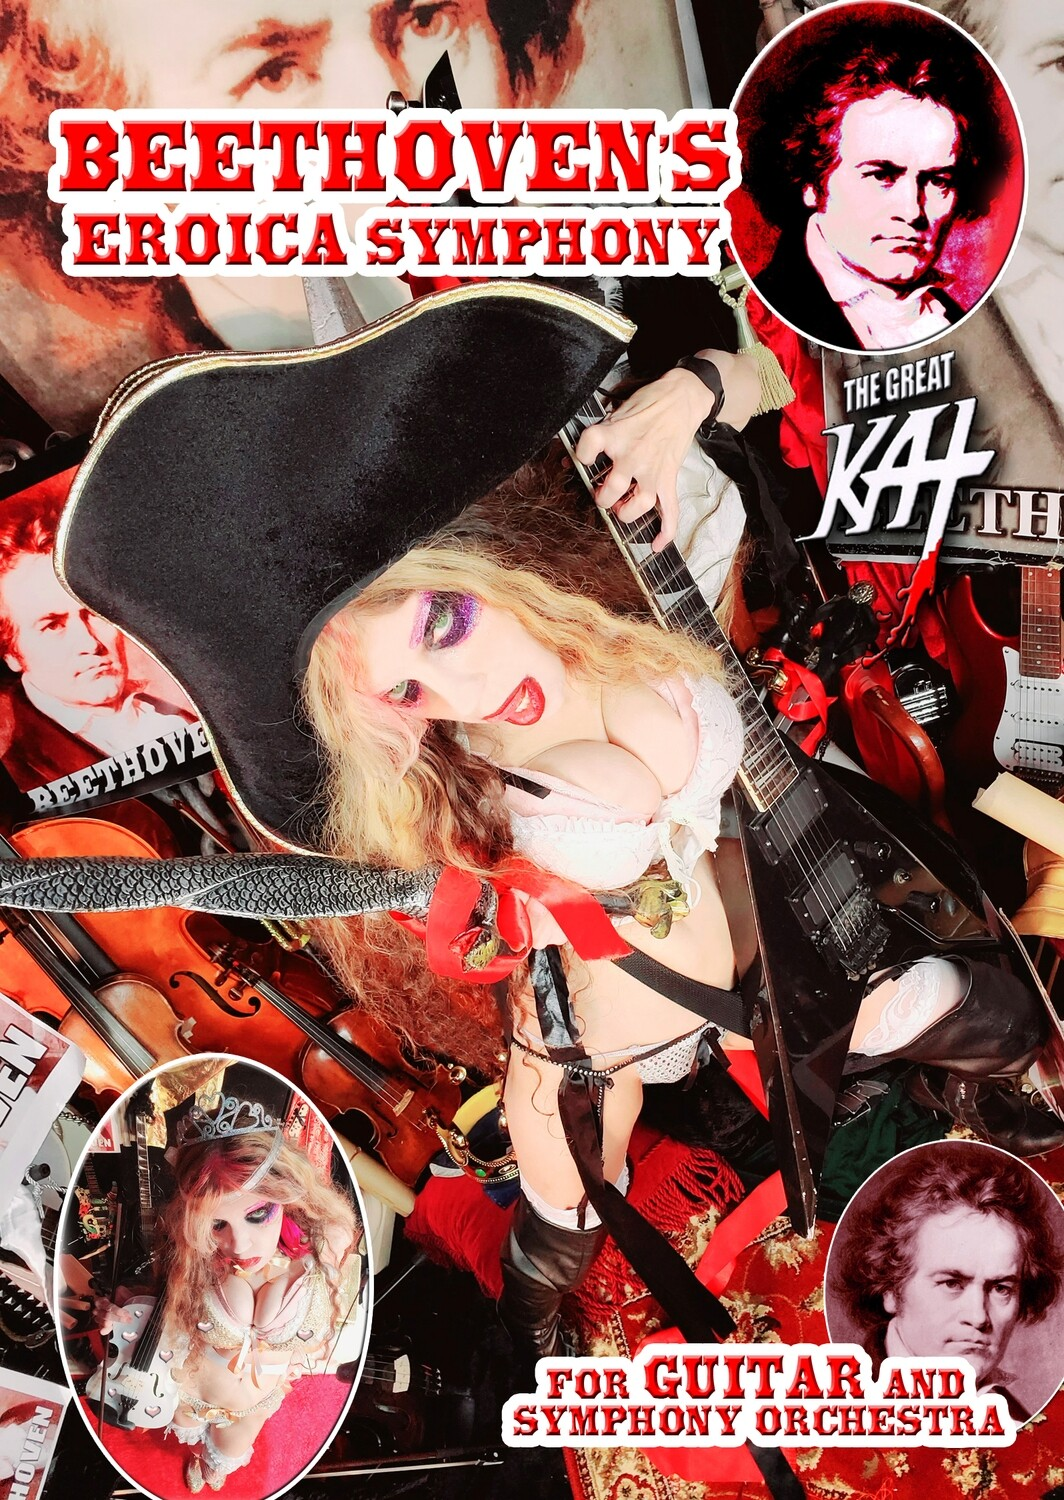 """NEW BEETHOVEN'S """"EROICA SYMPHONY for GUITAR and SYMPHONY ORCHESTRA"""" MUSIC VIDEO DVD SINGLE (1:11)! PERSONALIZED AUTOGRAPHED by THE GREAT KAT (Signed to Customer's Name)! HAPPY 250th BIRTHDAY BEETHOVEN"""